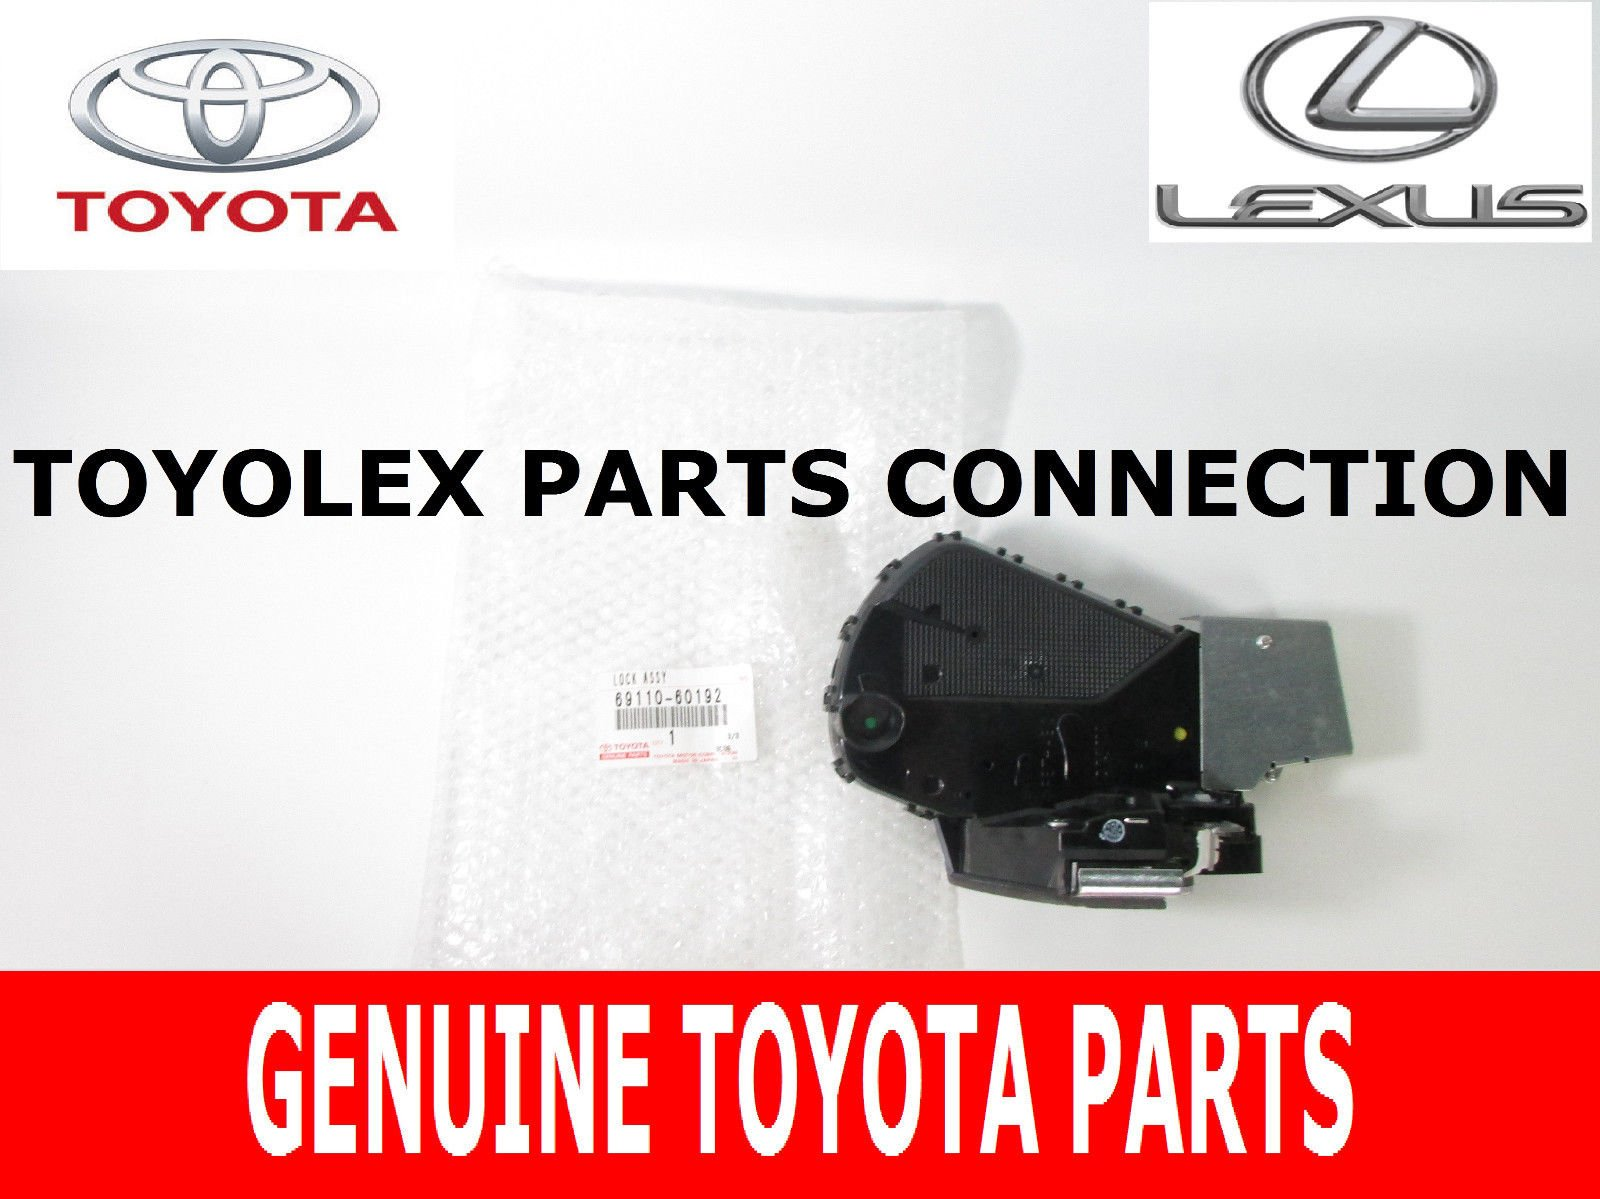 Genuine Toyota Rear Door Tailgate Lock Actuator for Lexus GX470 (69110-60192) by Toyota